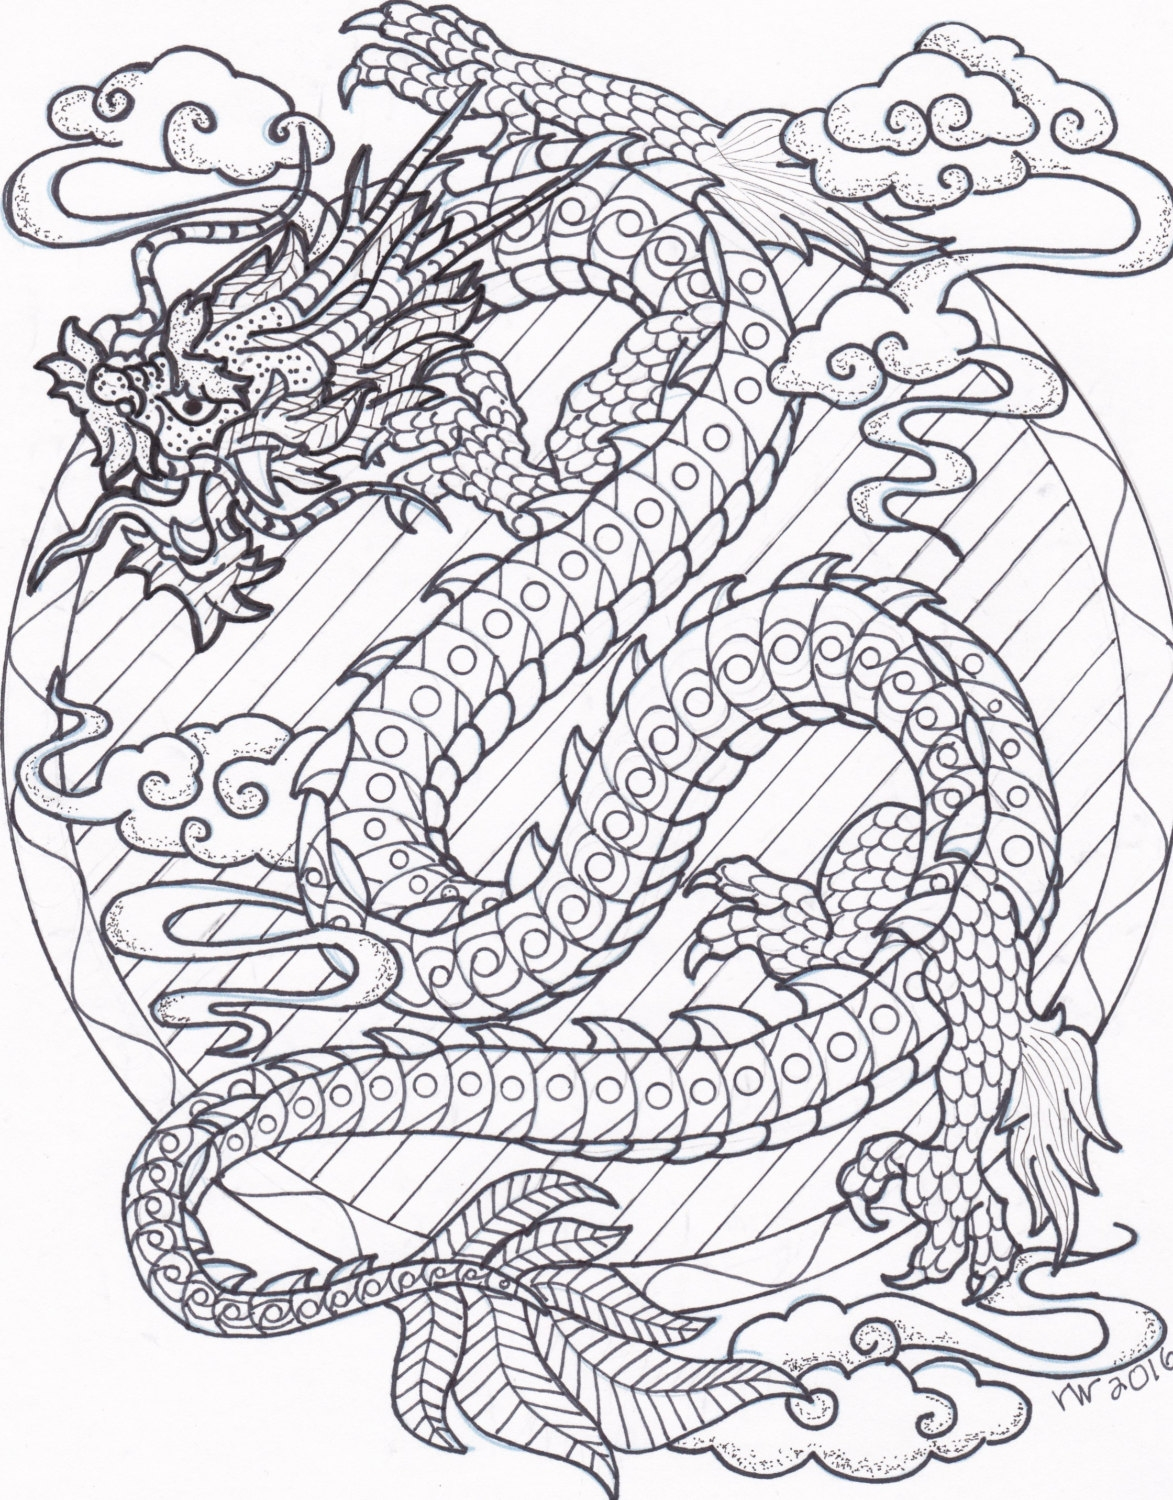 Dragon Adult Coloring Pages at GetDrawings.com | Free for personal ...